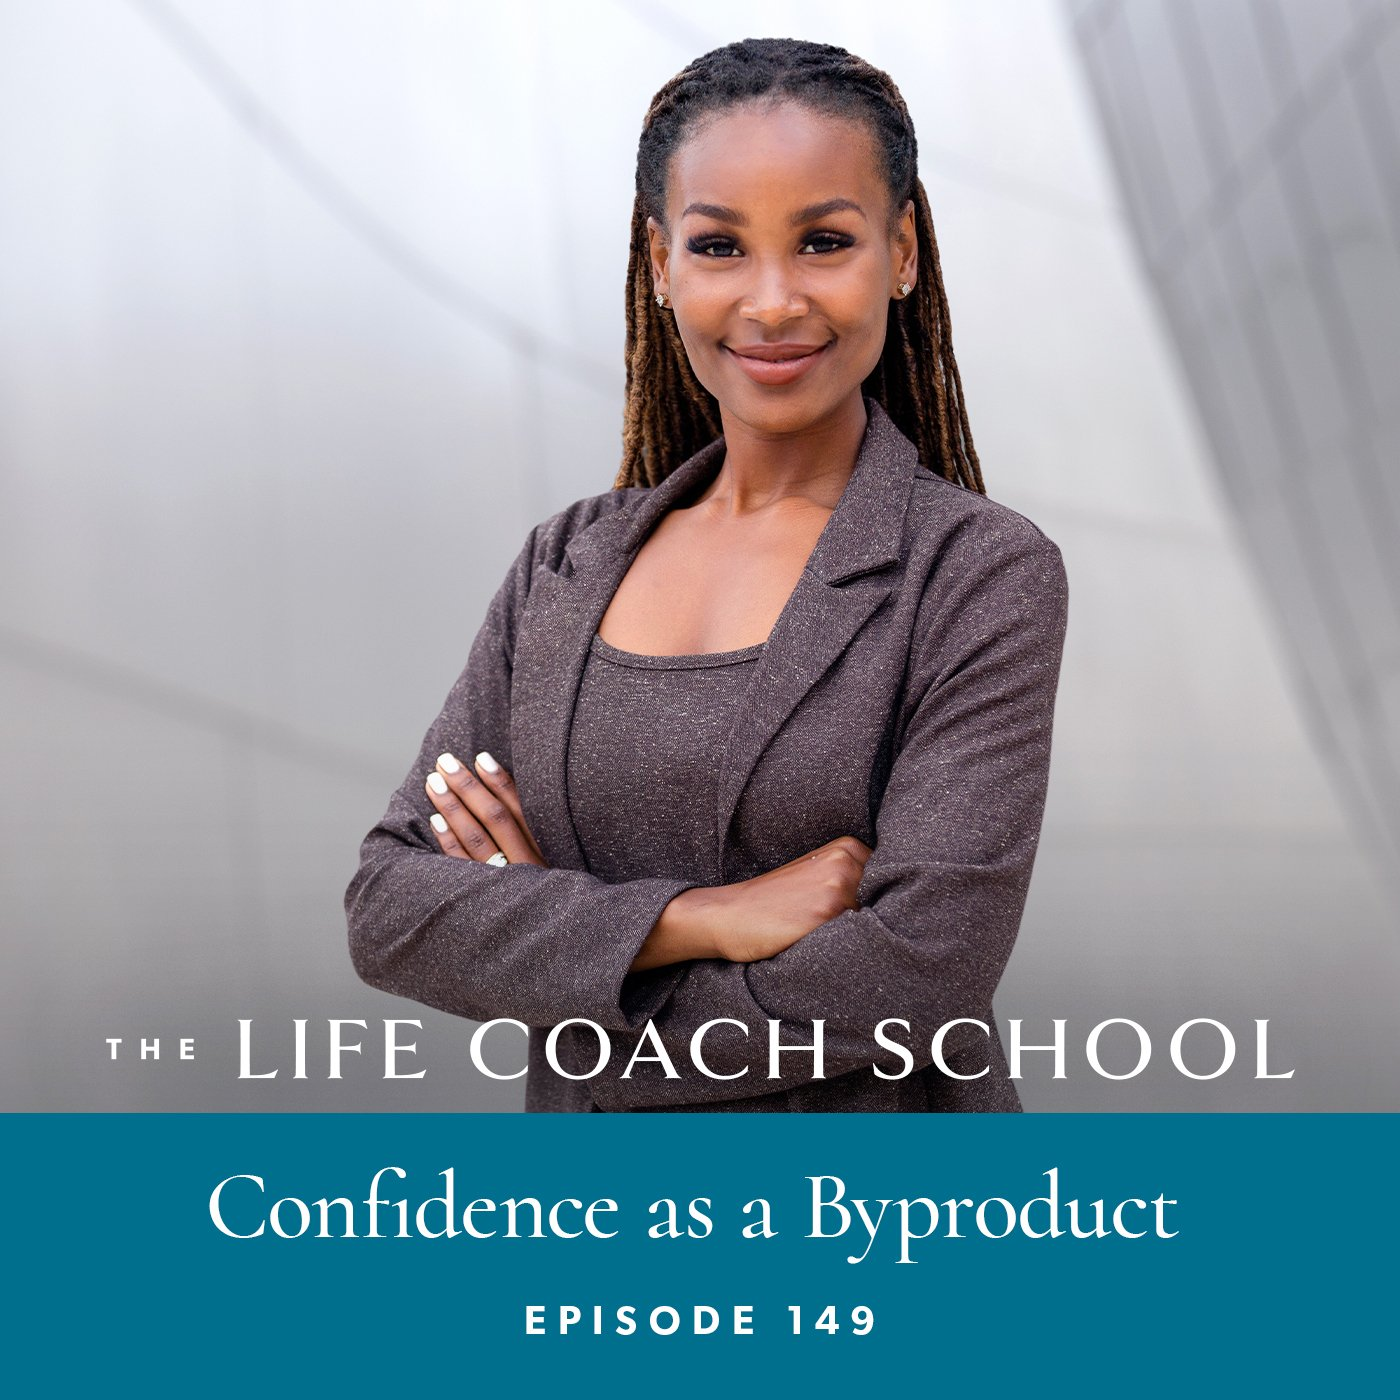 The Life Coach School Podcast with Brooke Castillo | Episode 149 | Confidence as a Byproduct